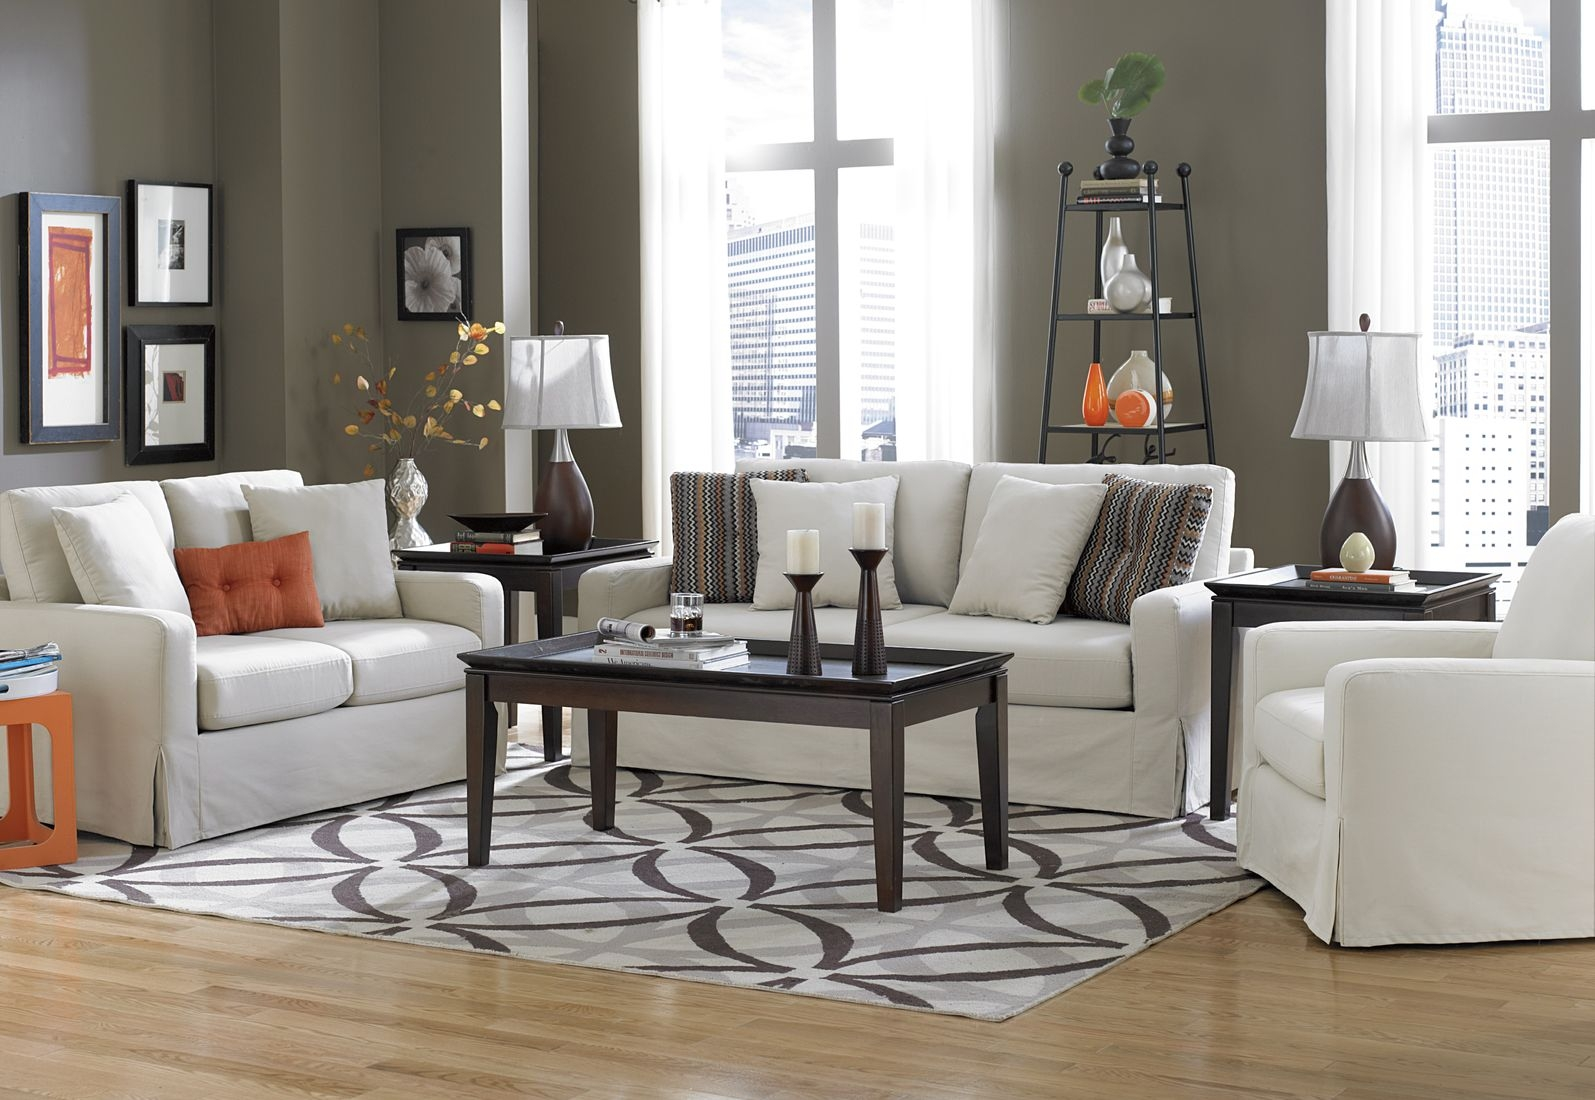 Exterior Design Interesting Decorative Floral Area Rugs Target Intended For Rugs In Living Rooms (Image 12 of 15)